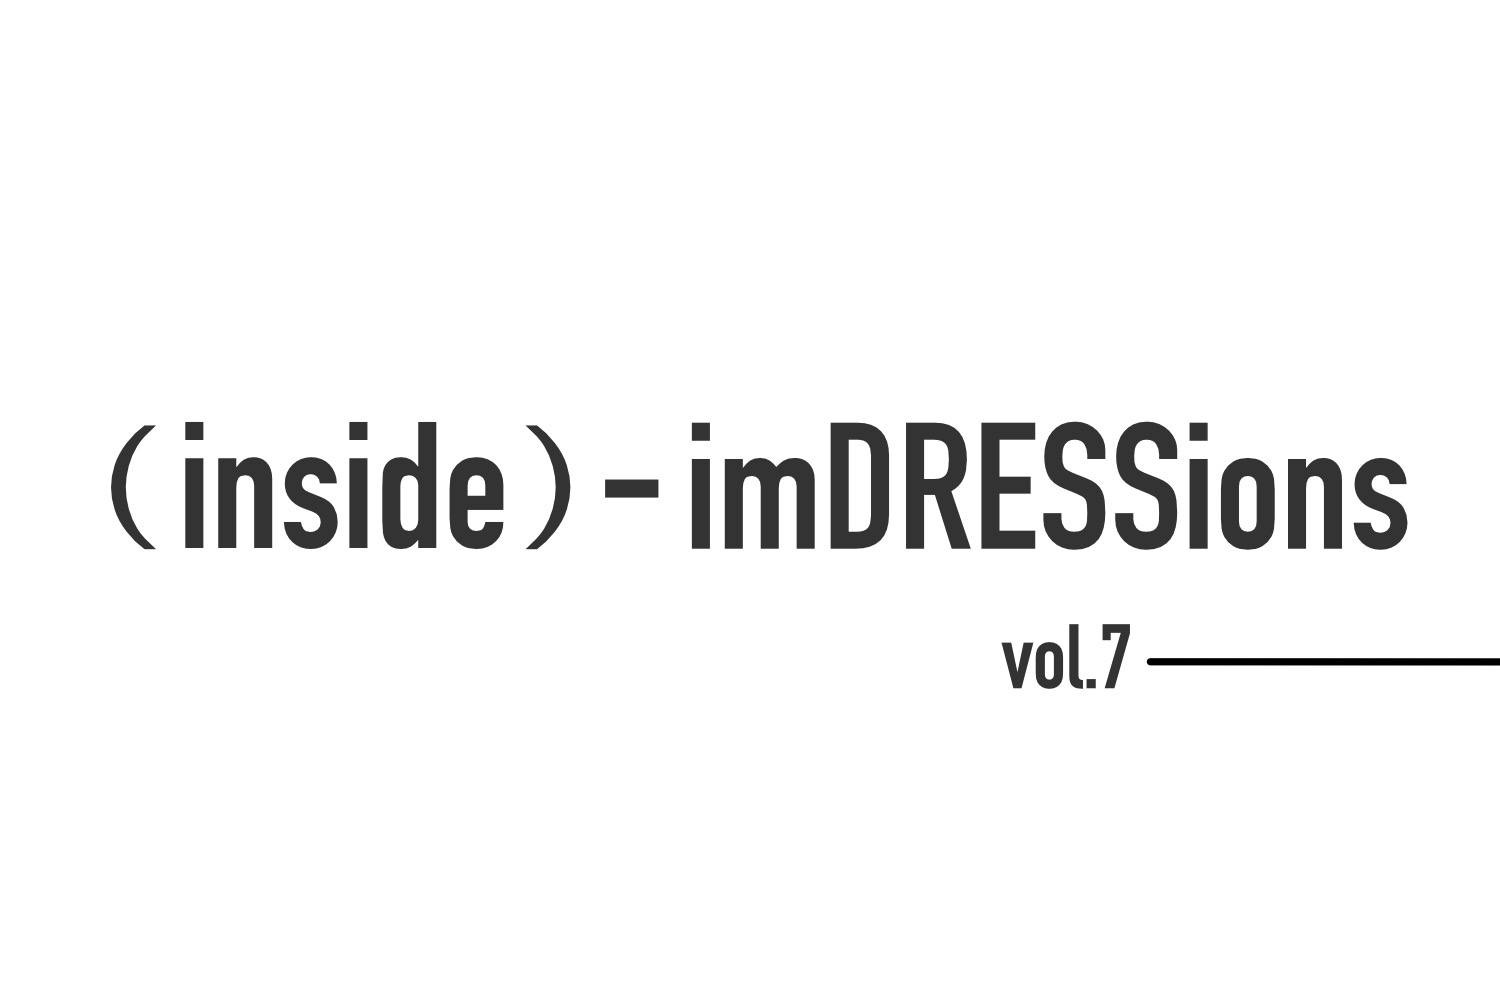 『(inside) – imDRESSions』vol.7-Appleに魅せられて。